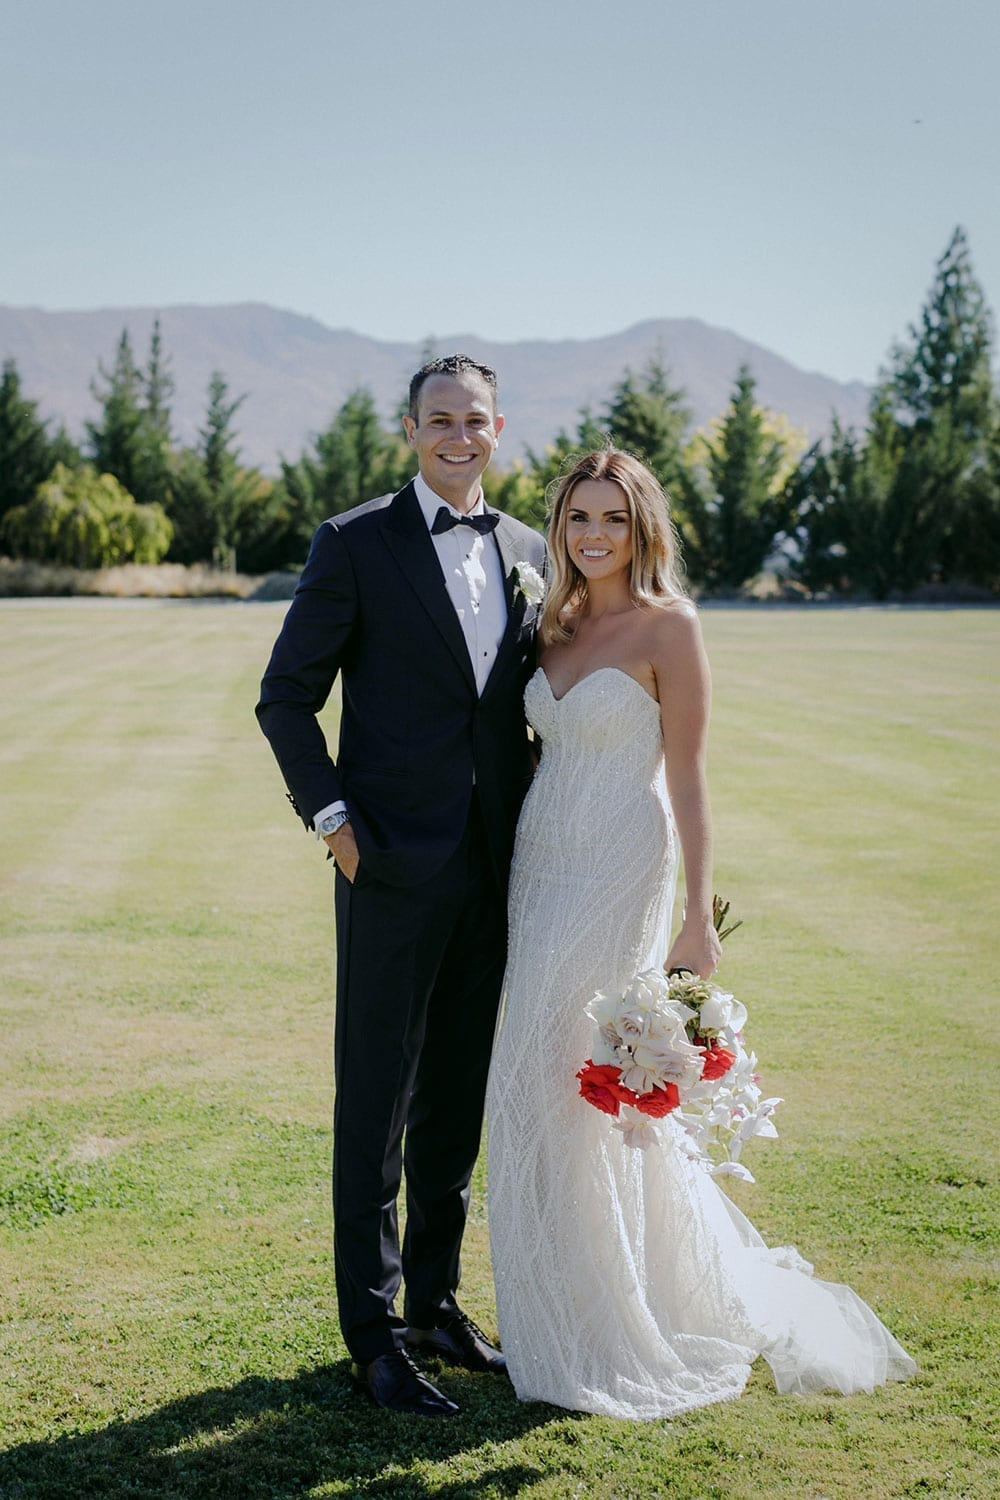 Vinka Design Features Real Weddings - bride in custom made gown, a combination of our Indi wedding dress with added beading appliqued and sewn by hand, over the top of a nude semi sheer base. With groom full length